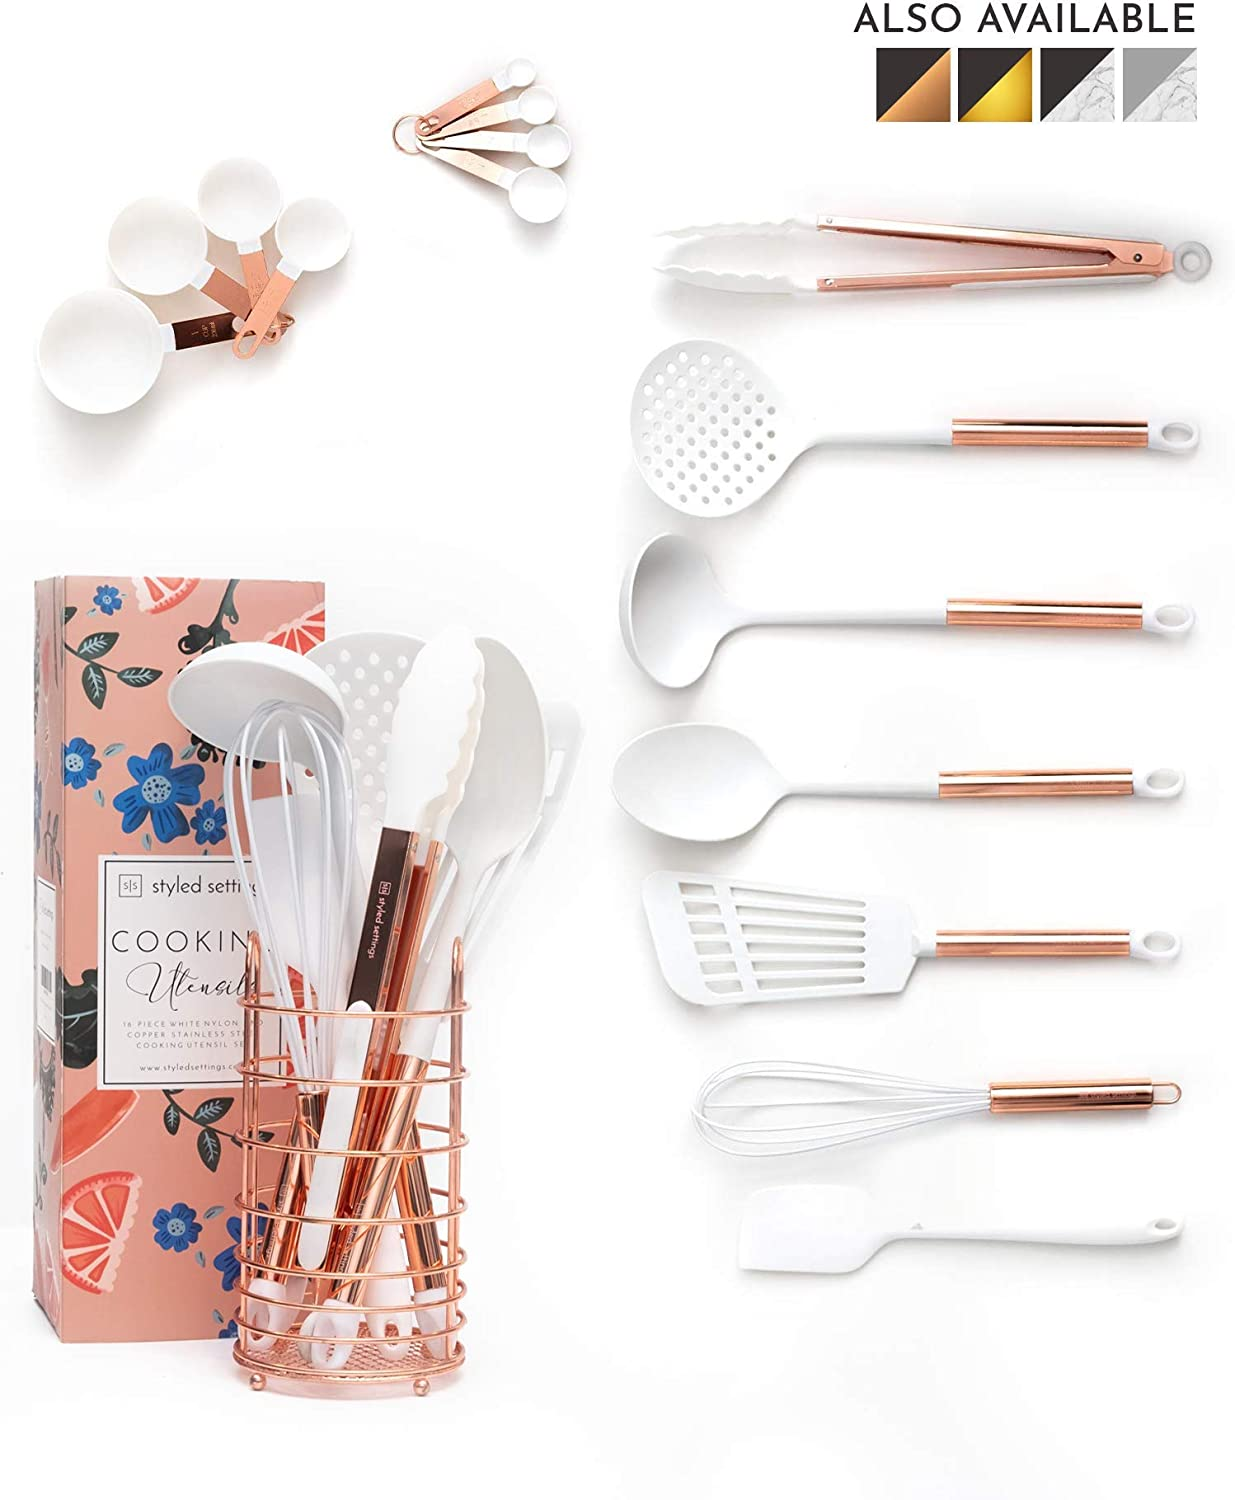 White and Rose Gold Cooking Utensils Set with Holder - 16-Piece Kitchen Utensil Set with Holder Includes White and Copper Measuring Cups and Spoons : Rose Gold Utensil Holder